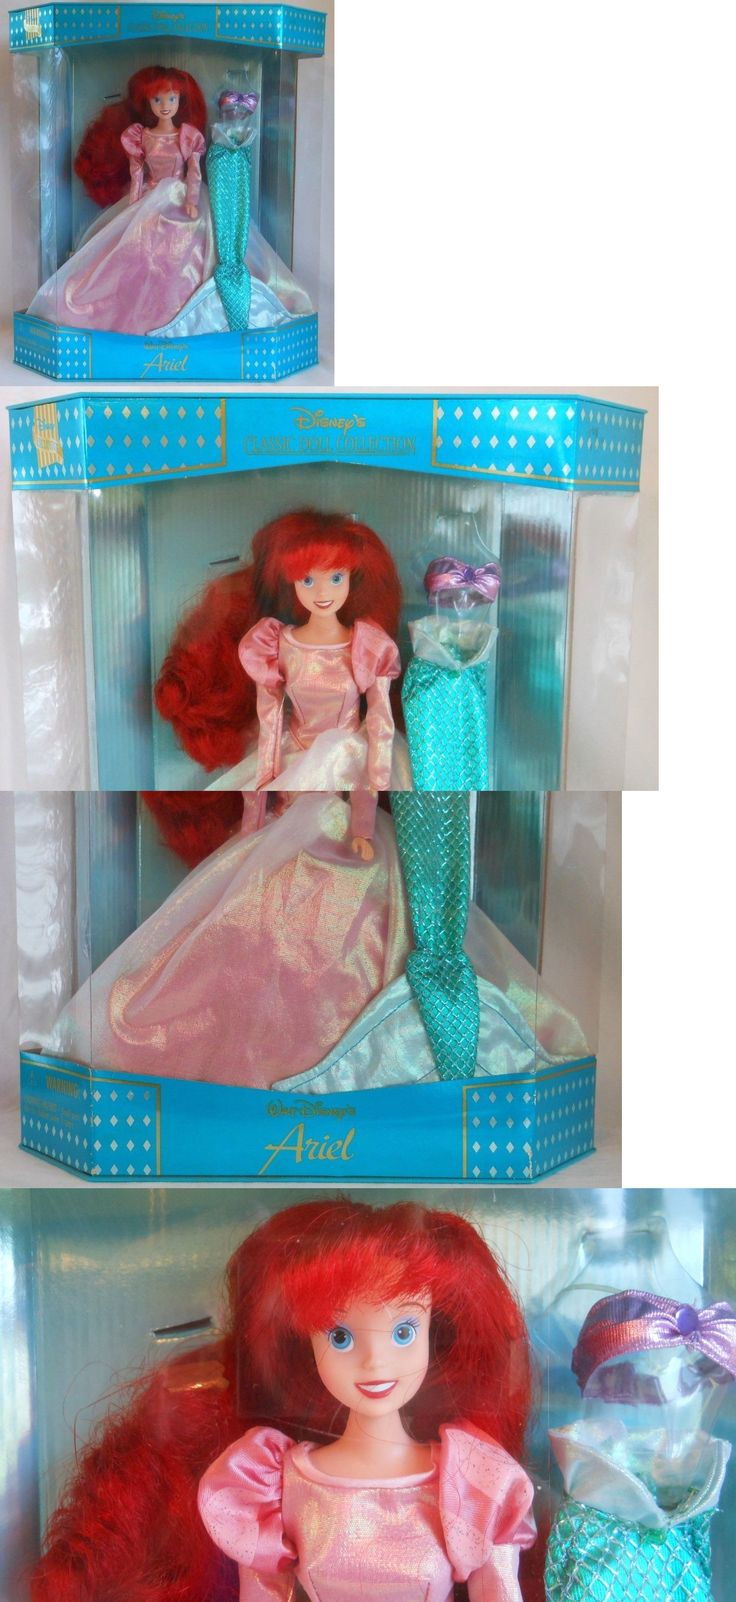 Little Mermaid 44036: Walt Disney Exclusive Classic Doll Collection Ariel The Little Mermaid Doll -> BUY IT NOW ONLY: $199.99 on eBay!